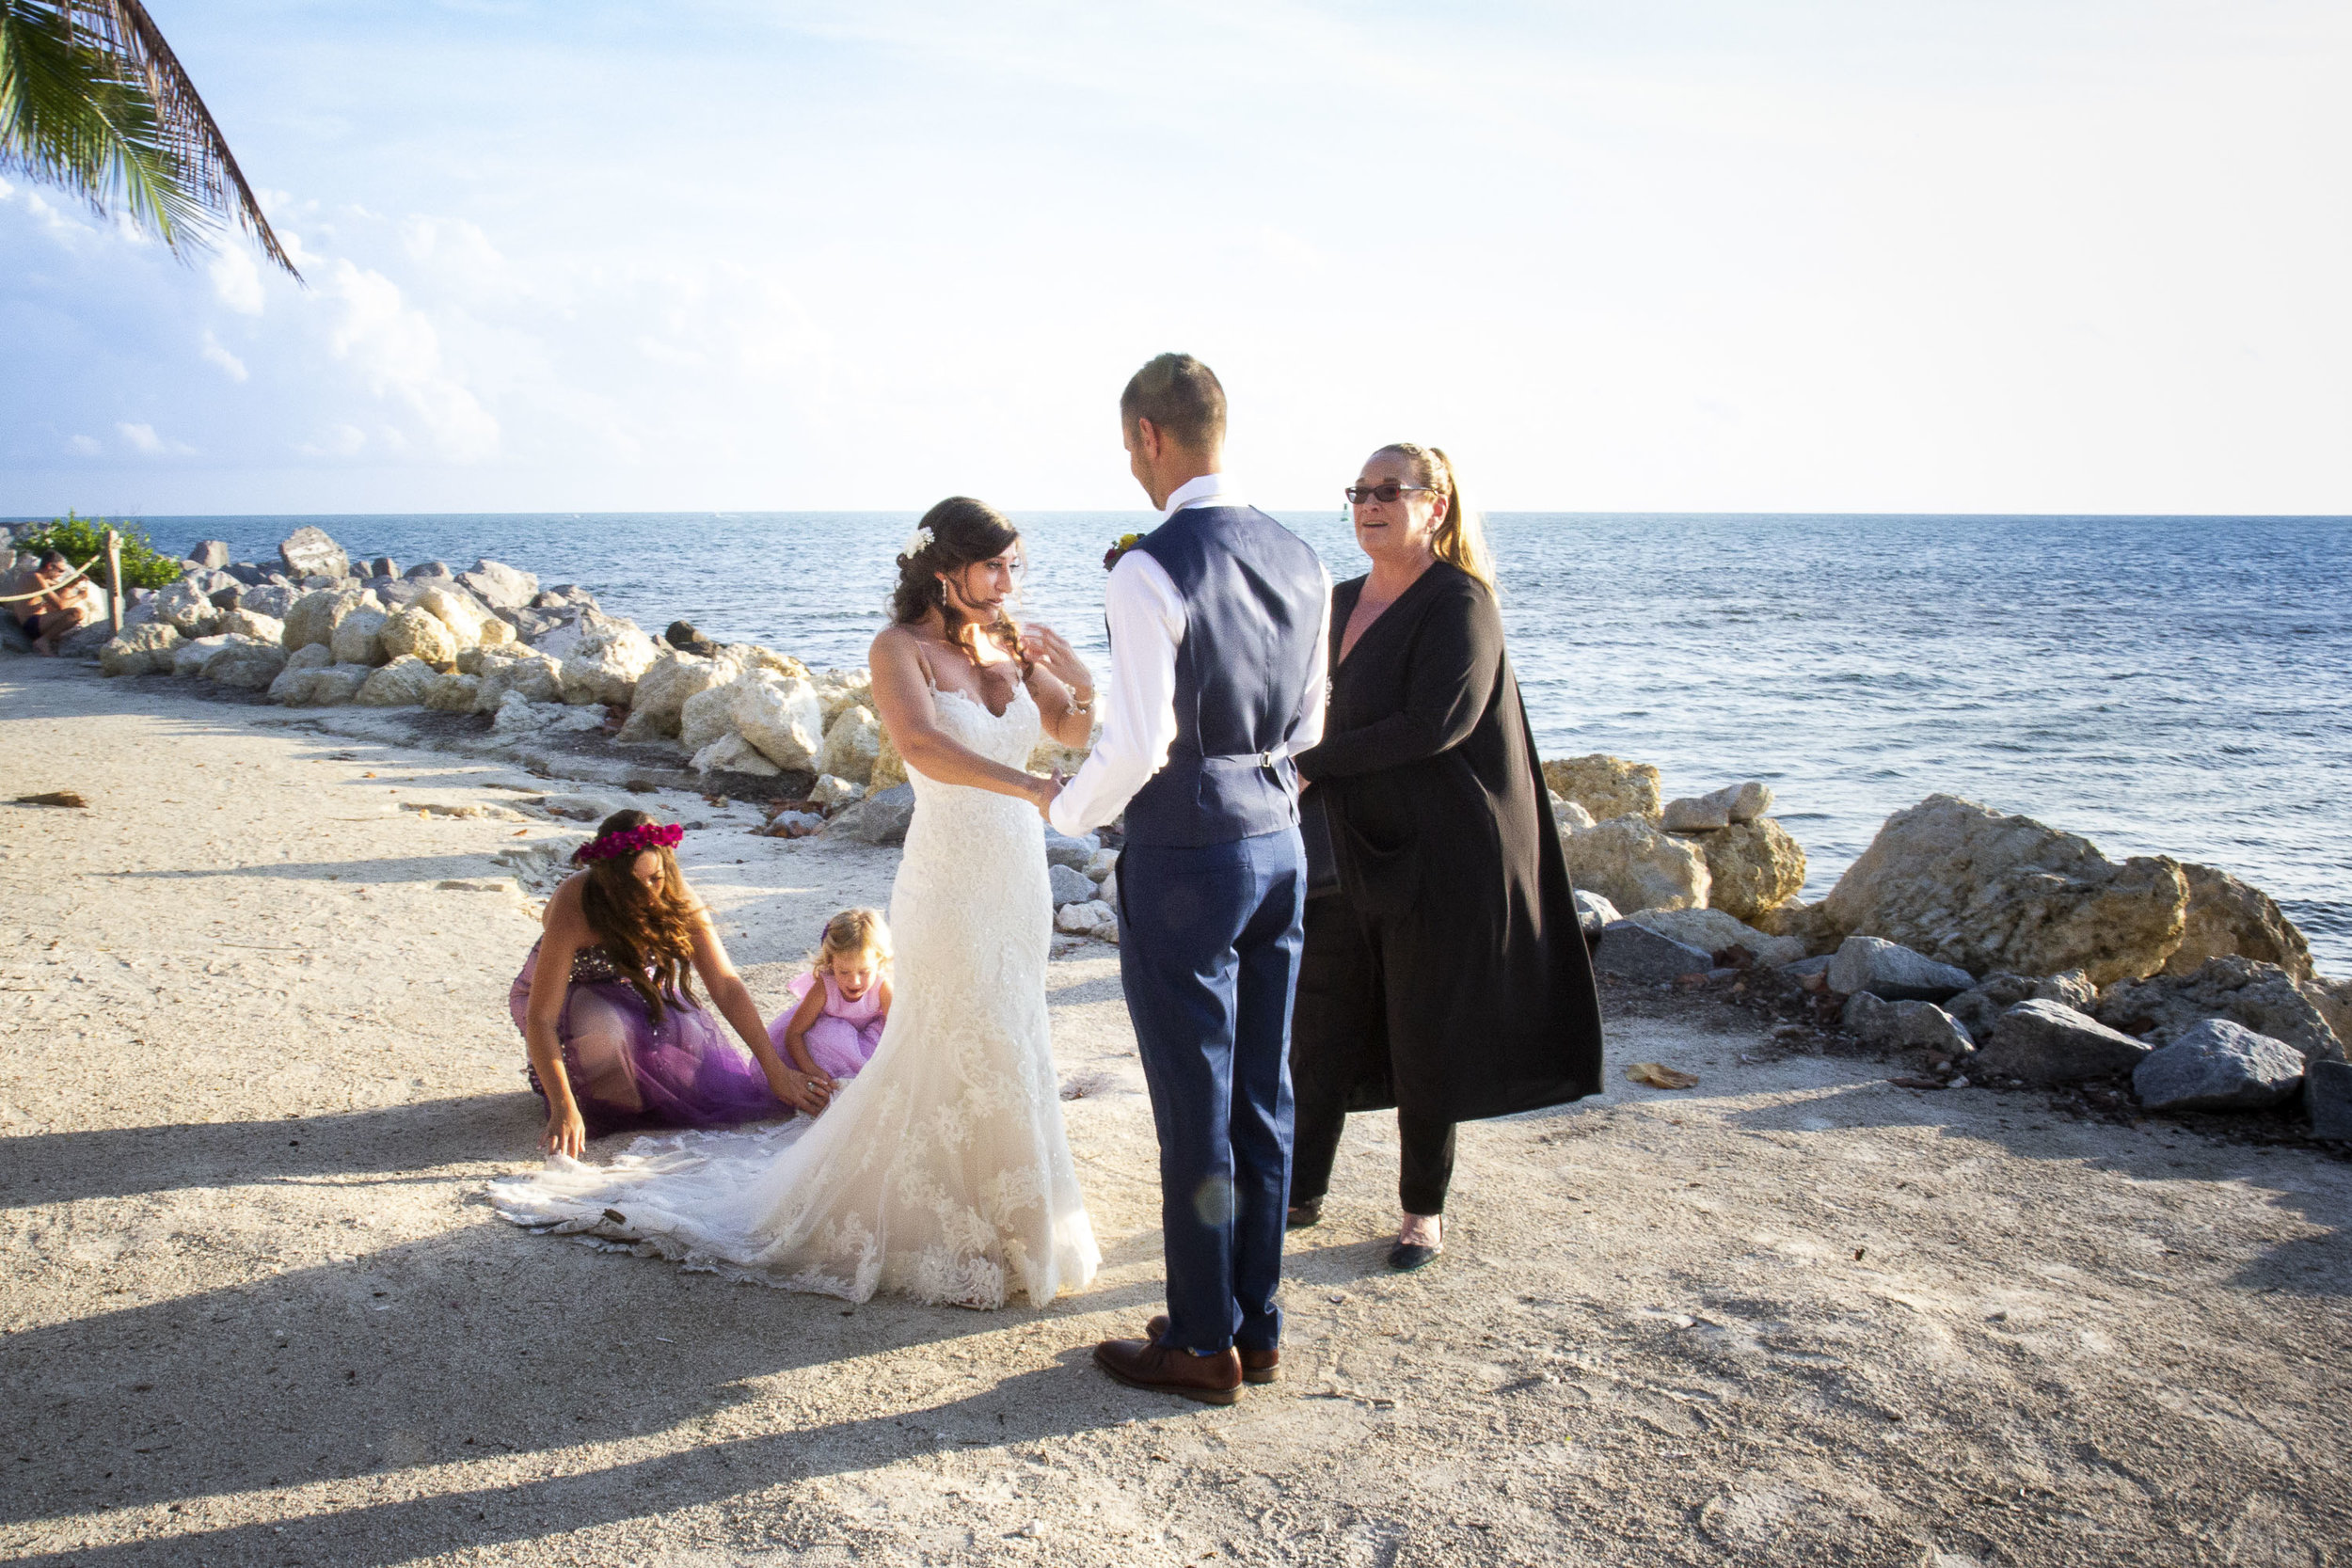 Getting married on the beach of Key West